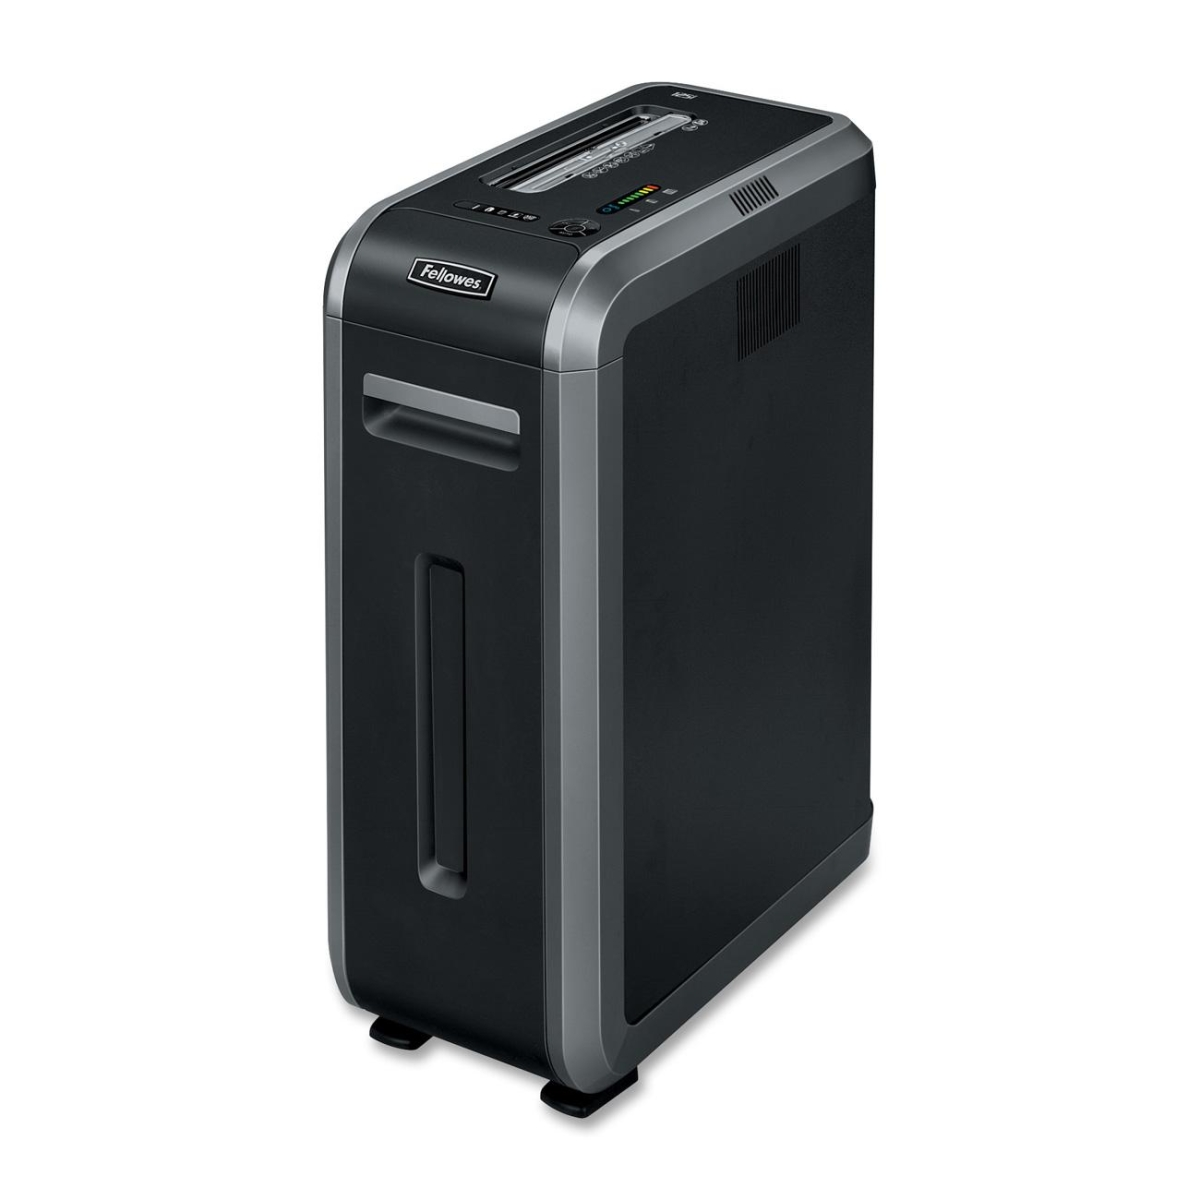 Powershred 125I Strip-Cut Shredder - Shreds 18 sheets per pass into 7/32 strip-cut particles (Security Level P-2)